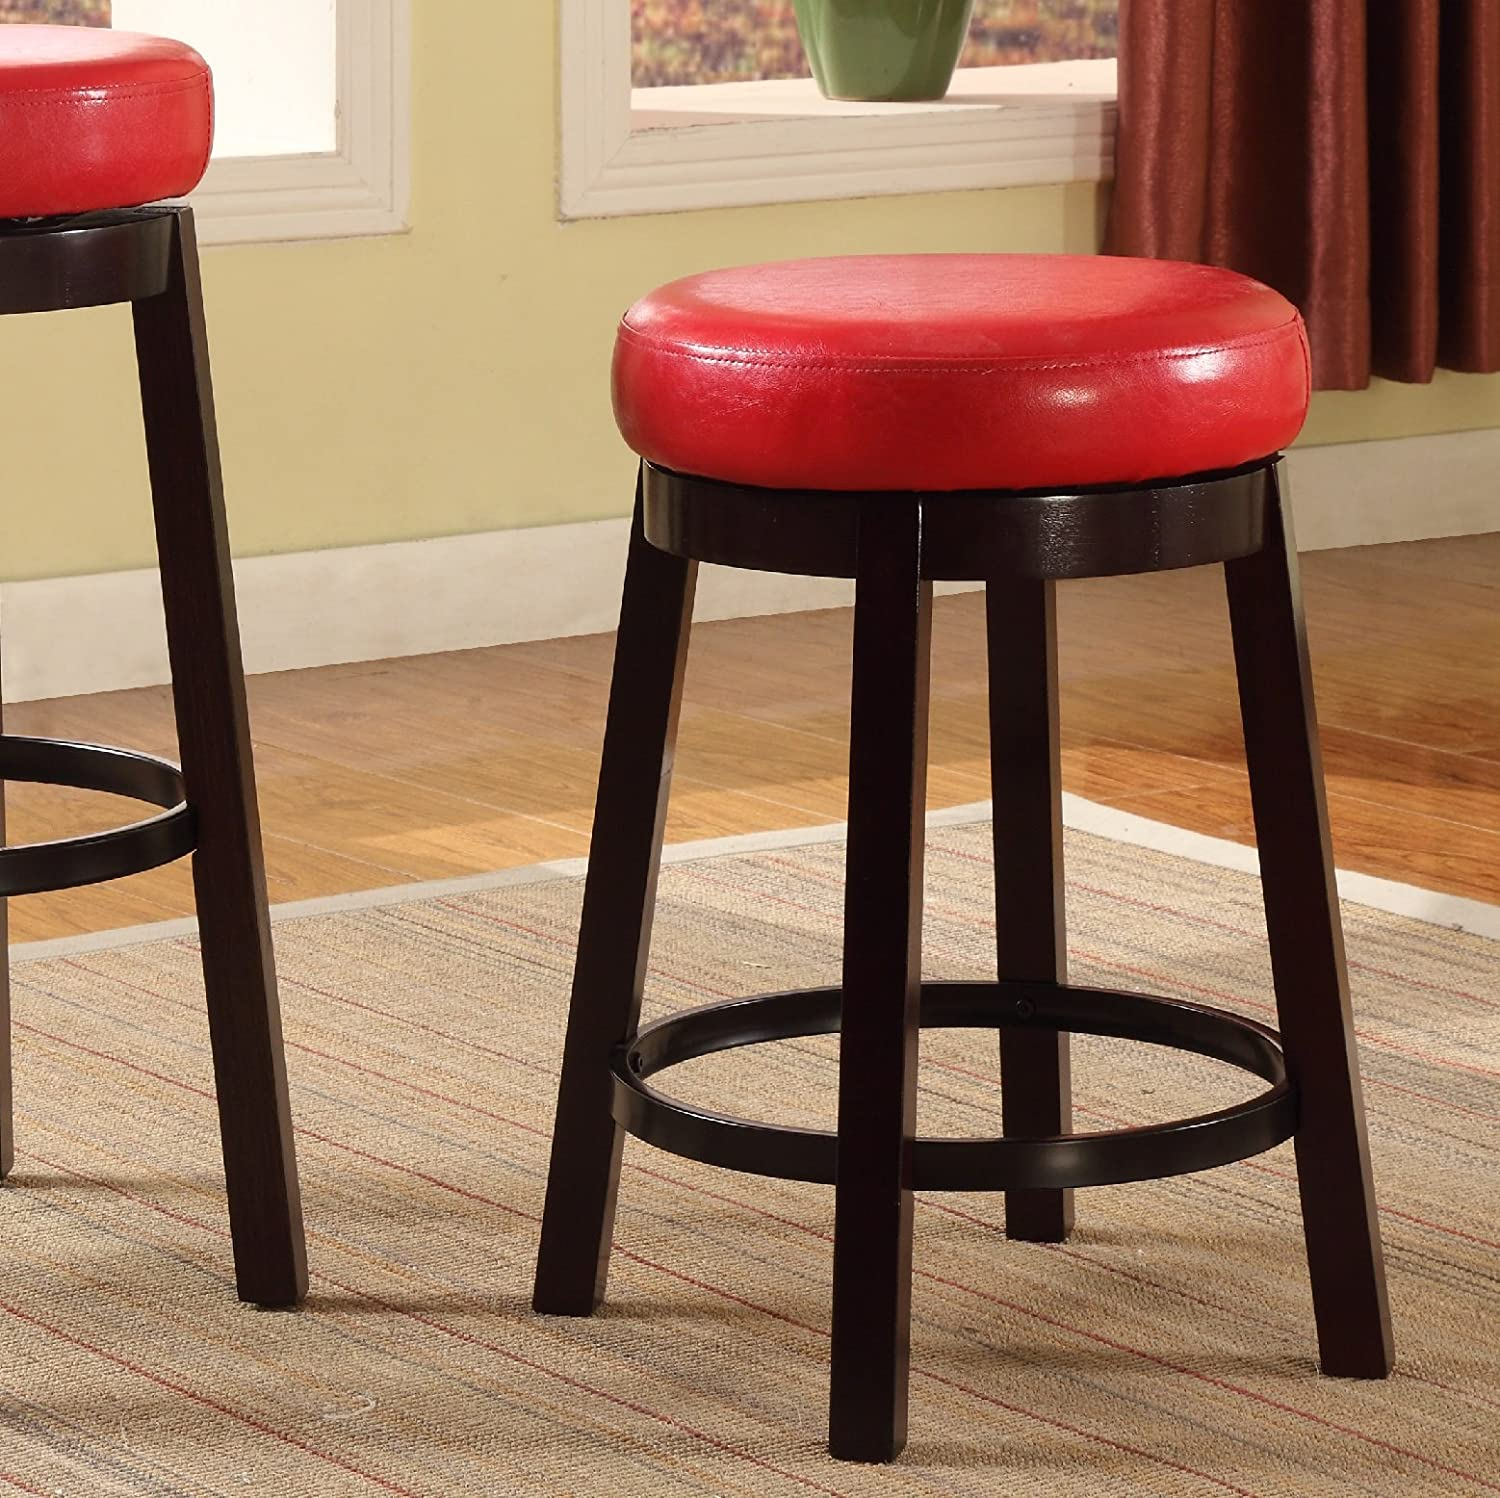 Stupendous Roundhill Furniture Wooden Swivel Barstools Counter Height Bloody Red Set Of 2 Gmtry Best Dining Table And Chair Ideas Images Gmtryco